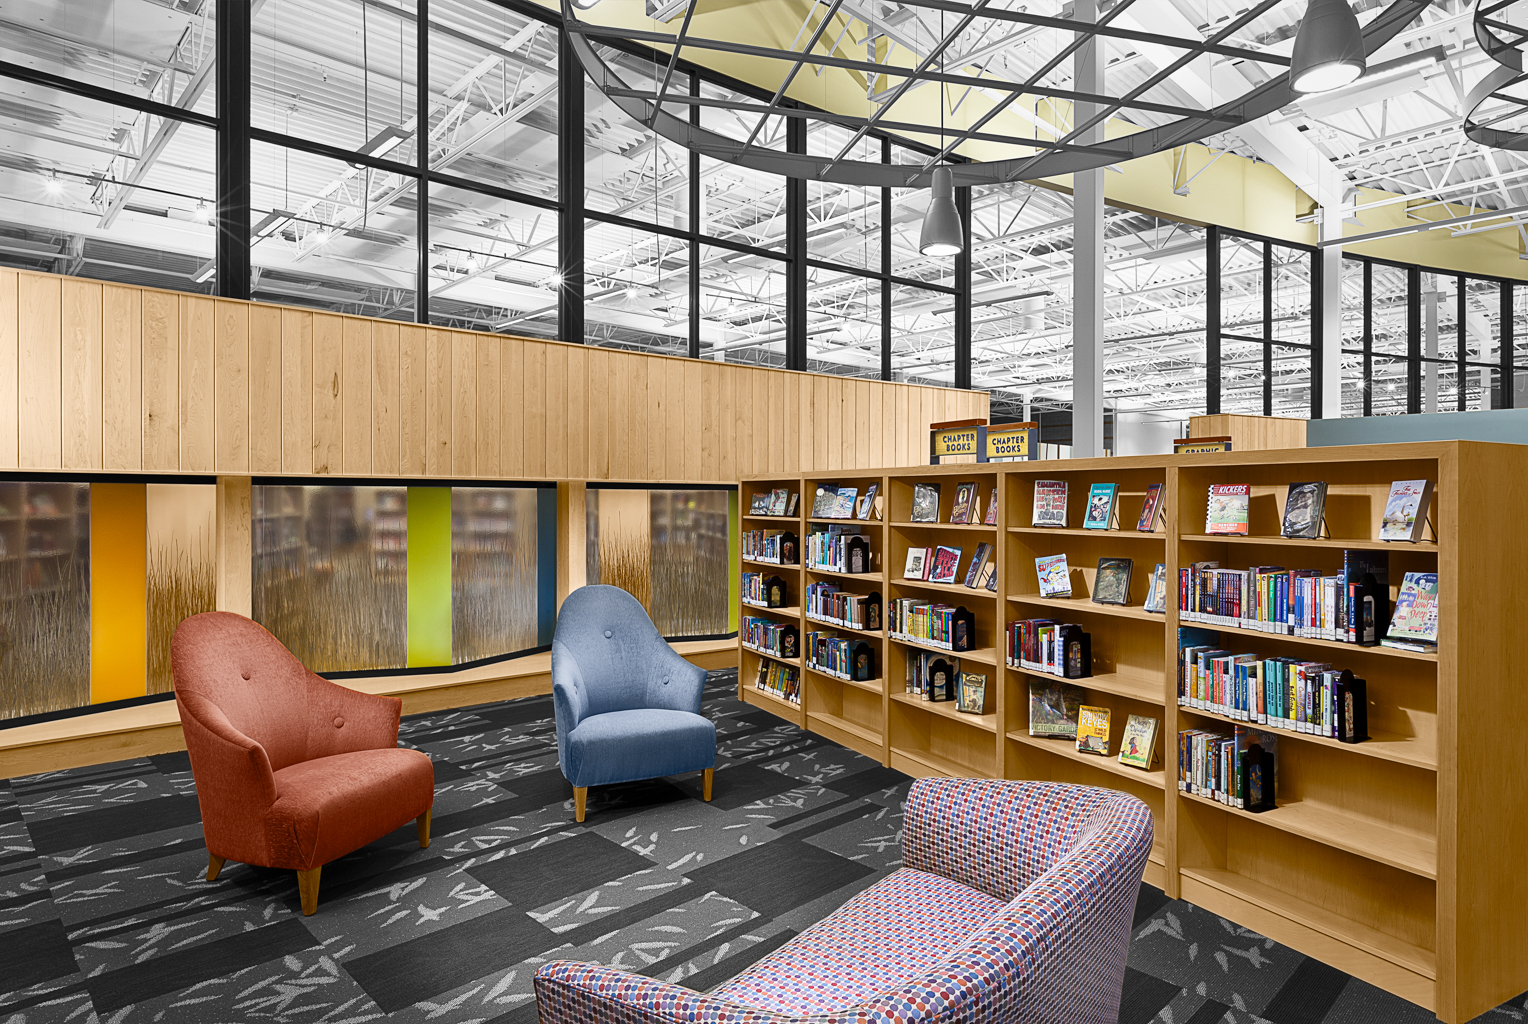 Interior of library reading area at Anythink Wright Farms Library designed by Humphries Poli Artchitects in Thornton, CO